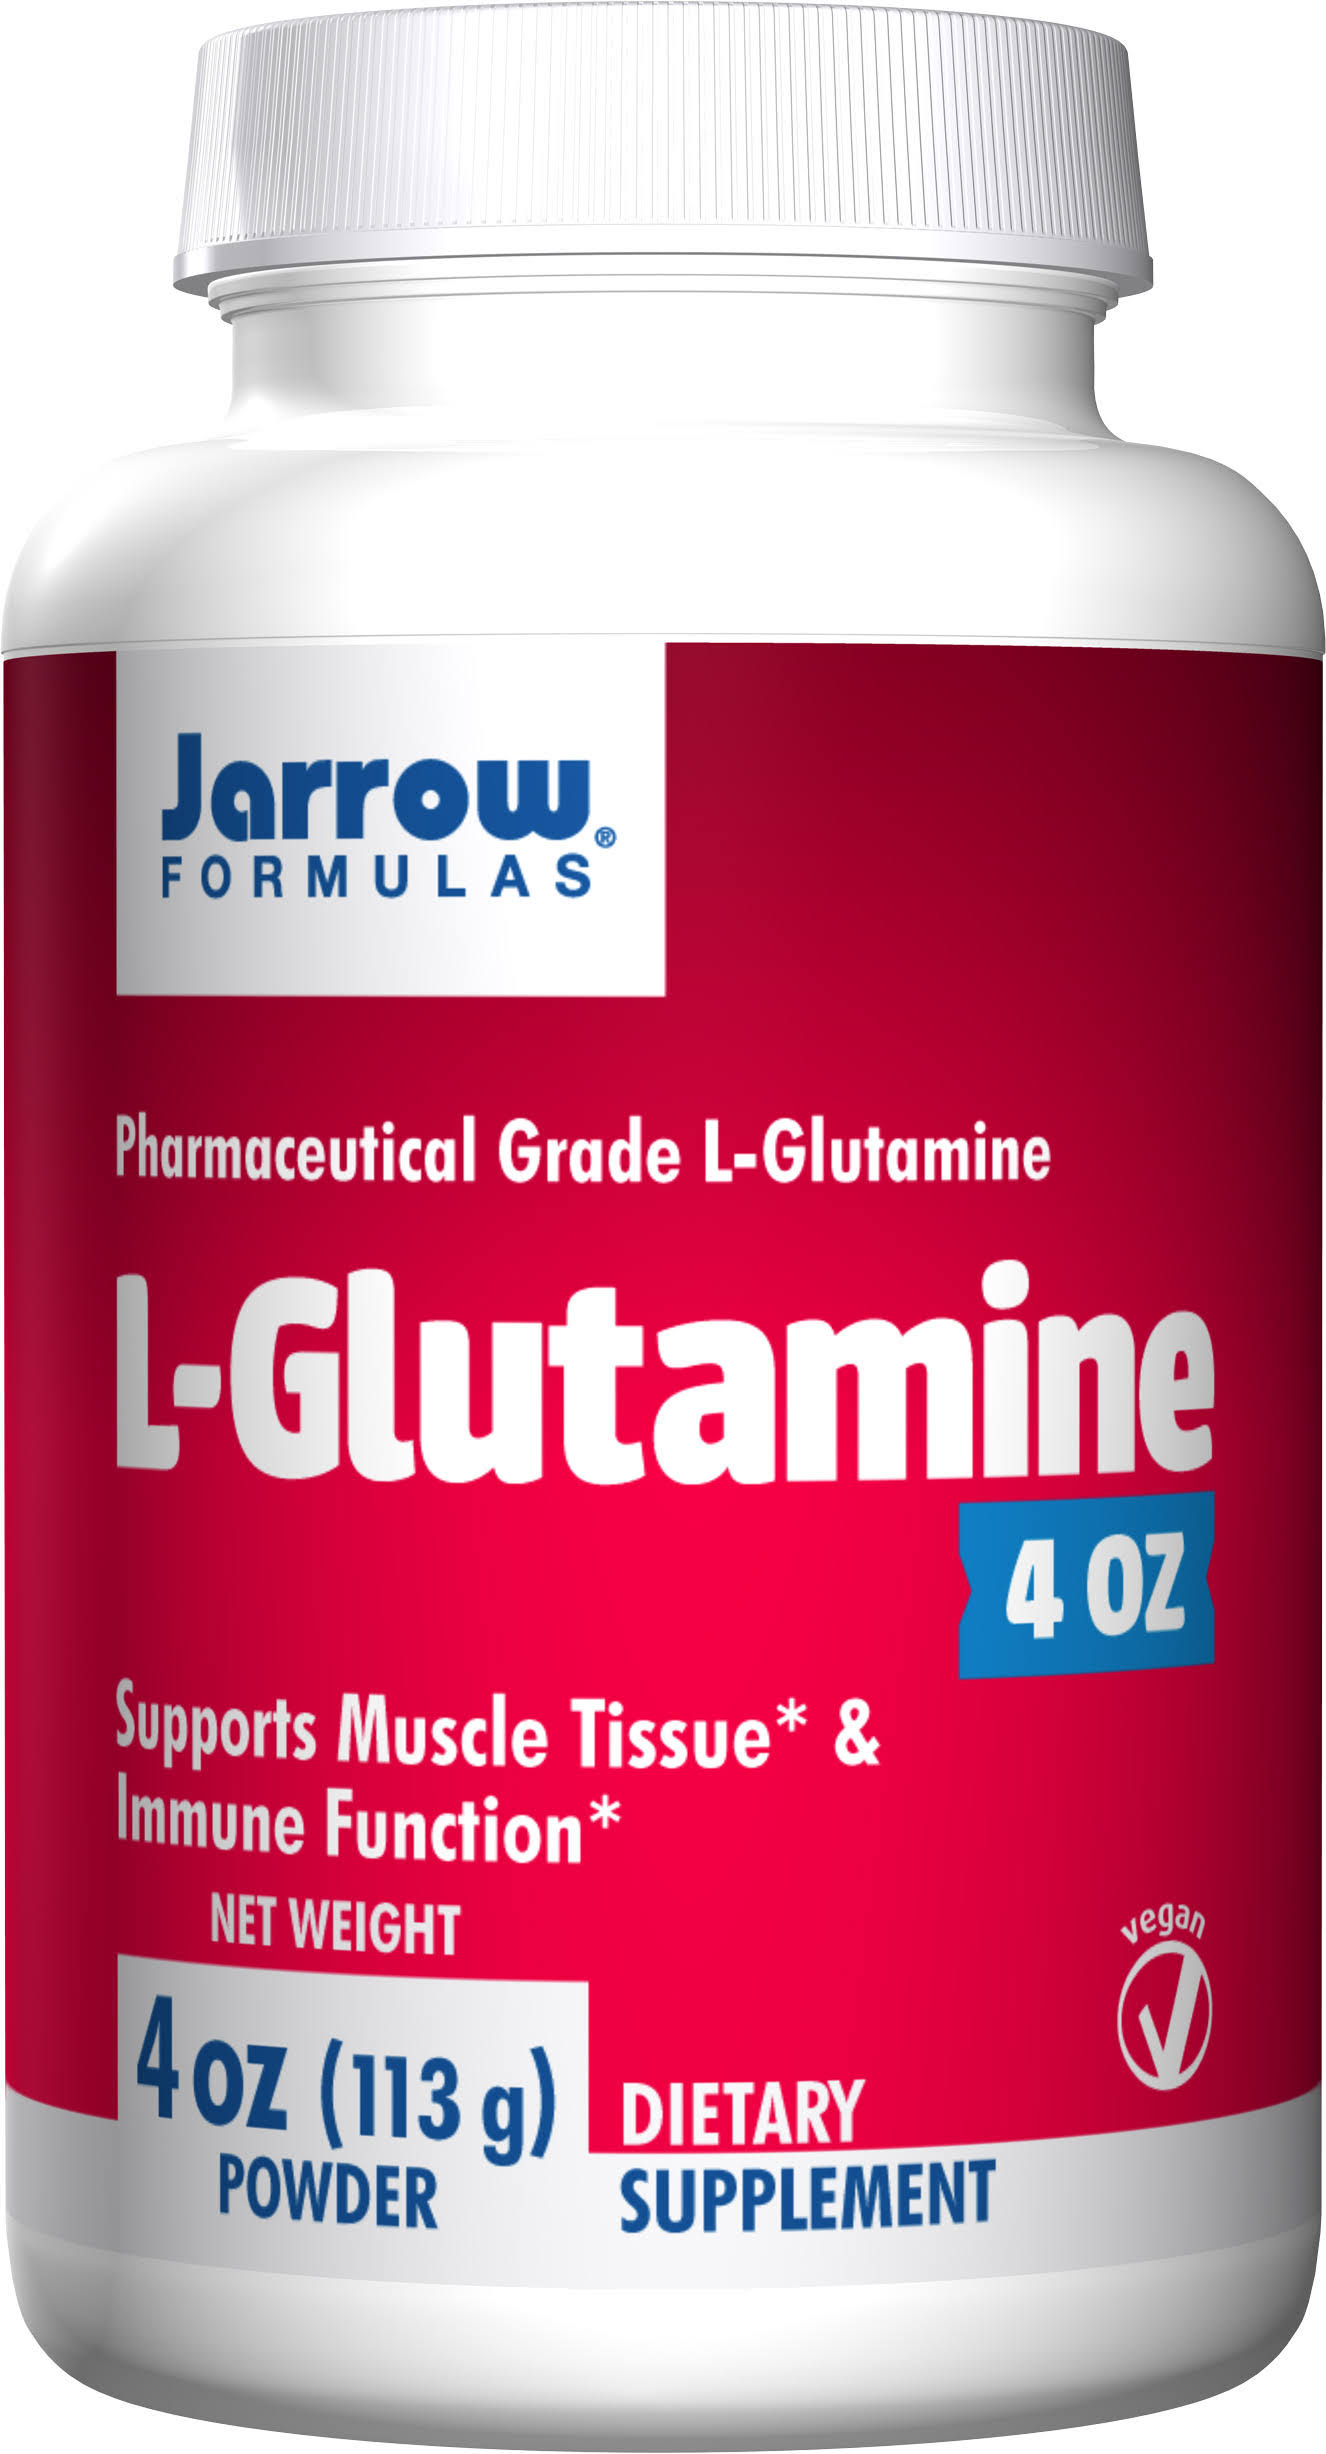 Jarrow Formulas L-Glutamine Powder - 113g